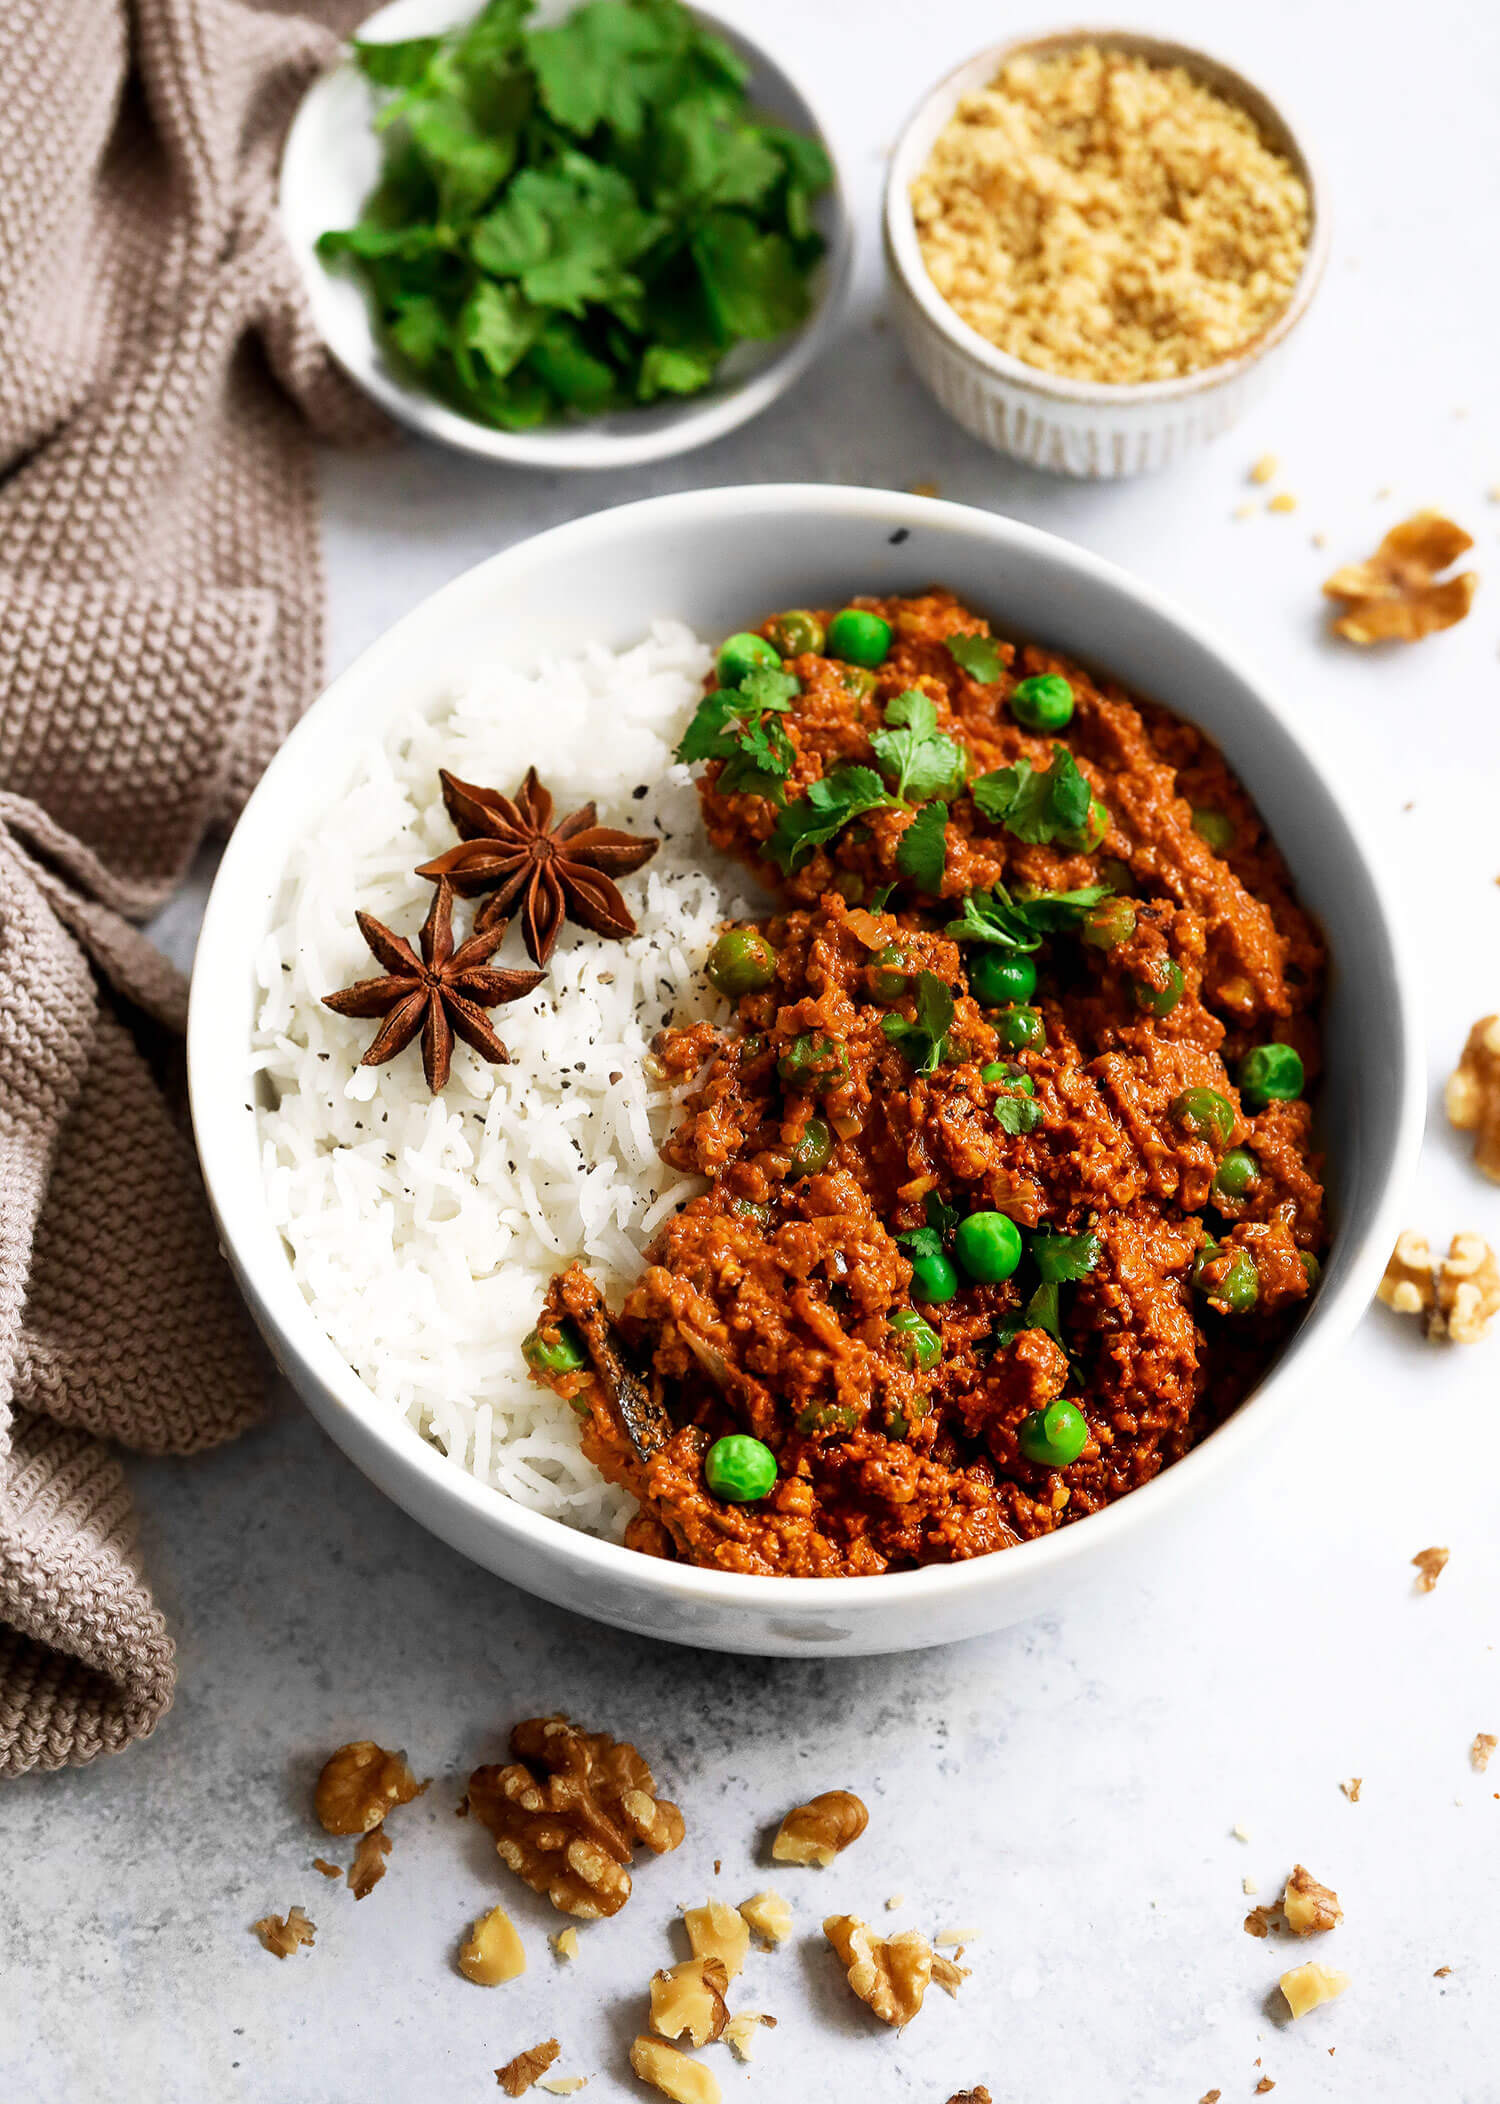 California Walnut Keema